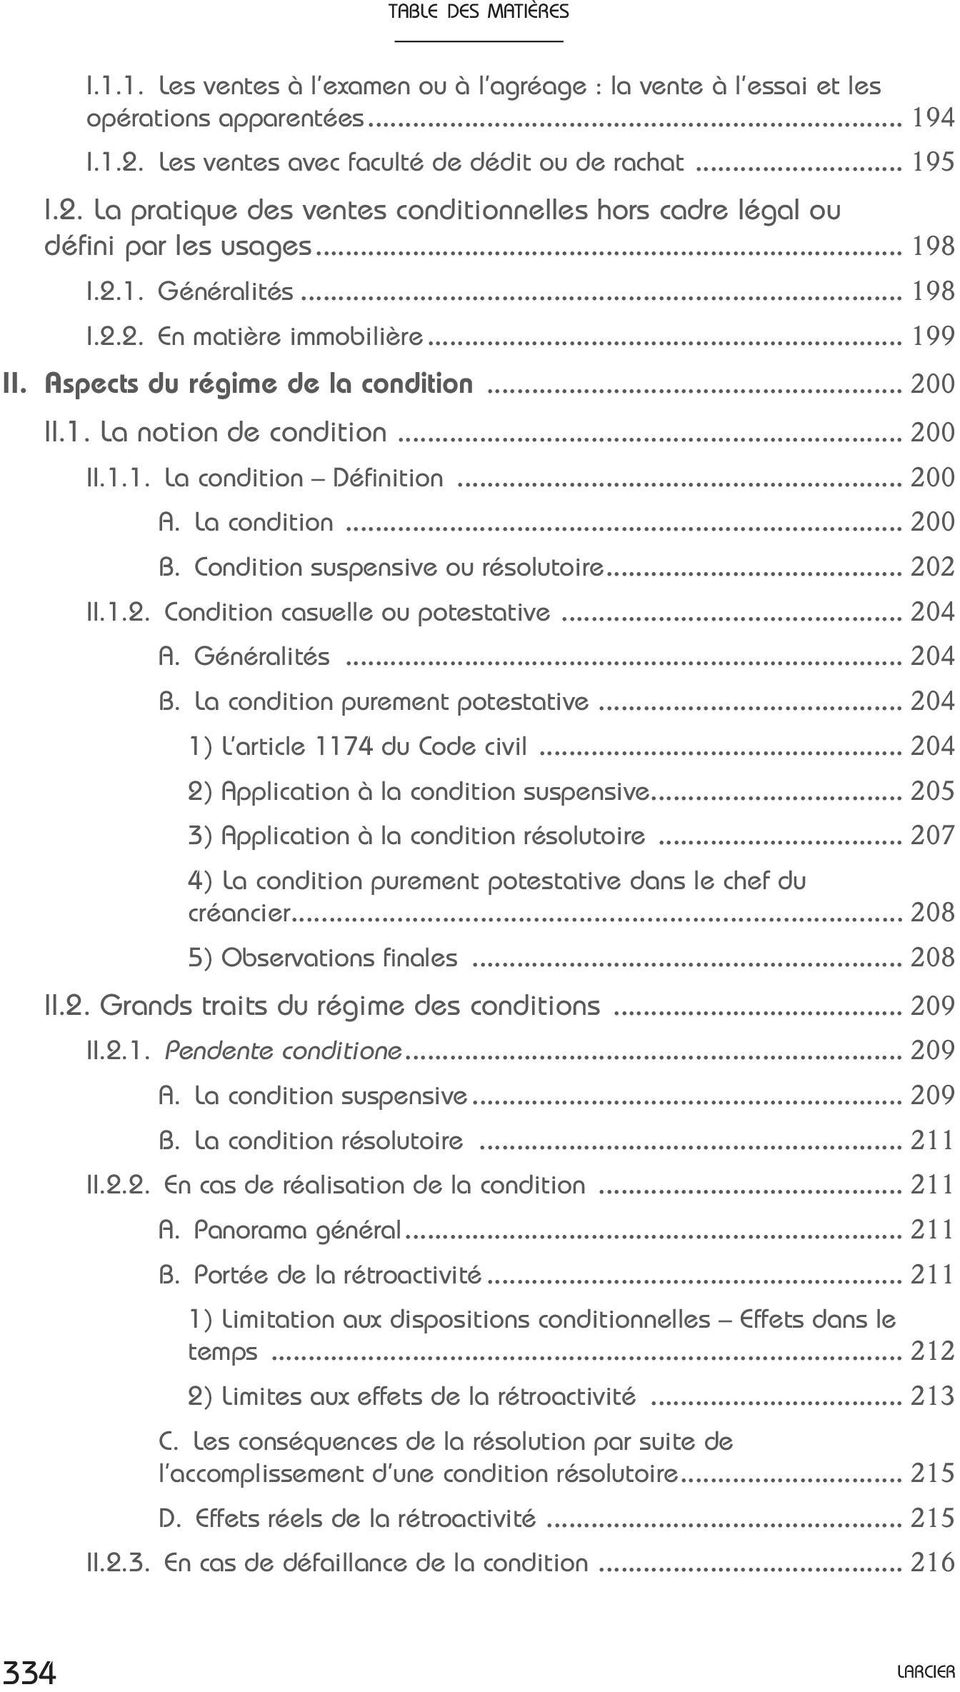 La condition... 200 B. Condition suspensive ou résolutoire... 202 II.1.2. Condition casuelle ou potestative... 204 A. Généralités... 204 B. La condition purement potestative.